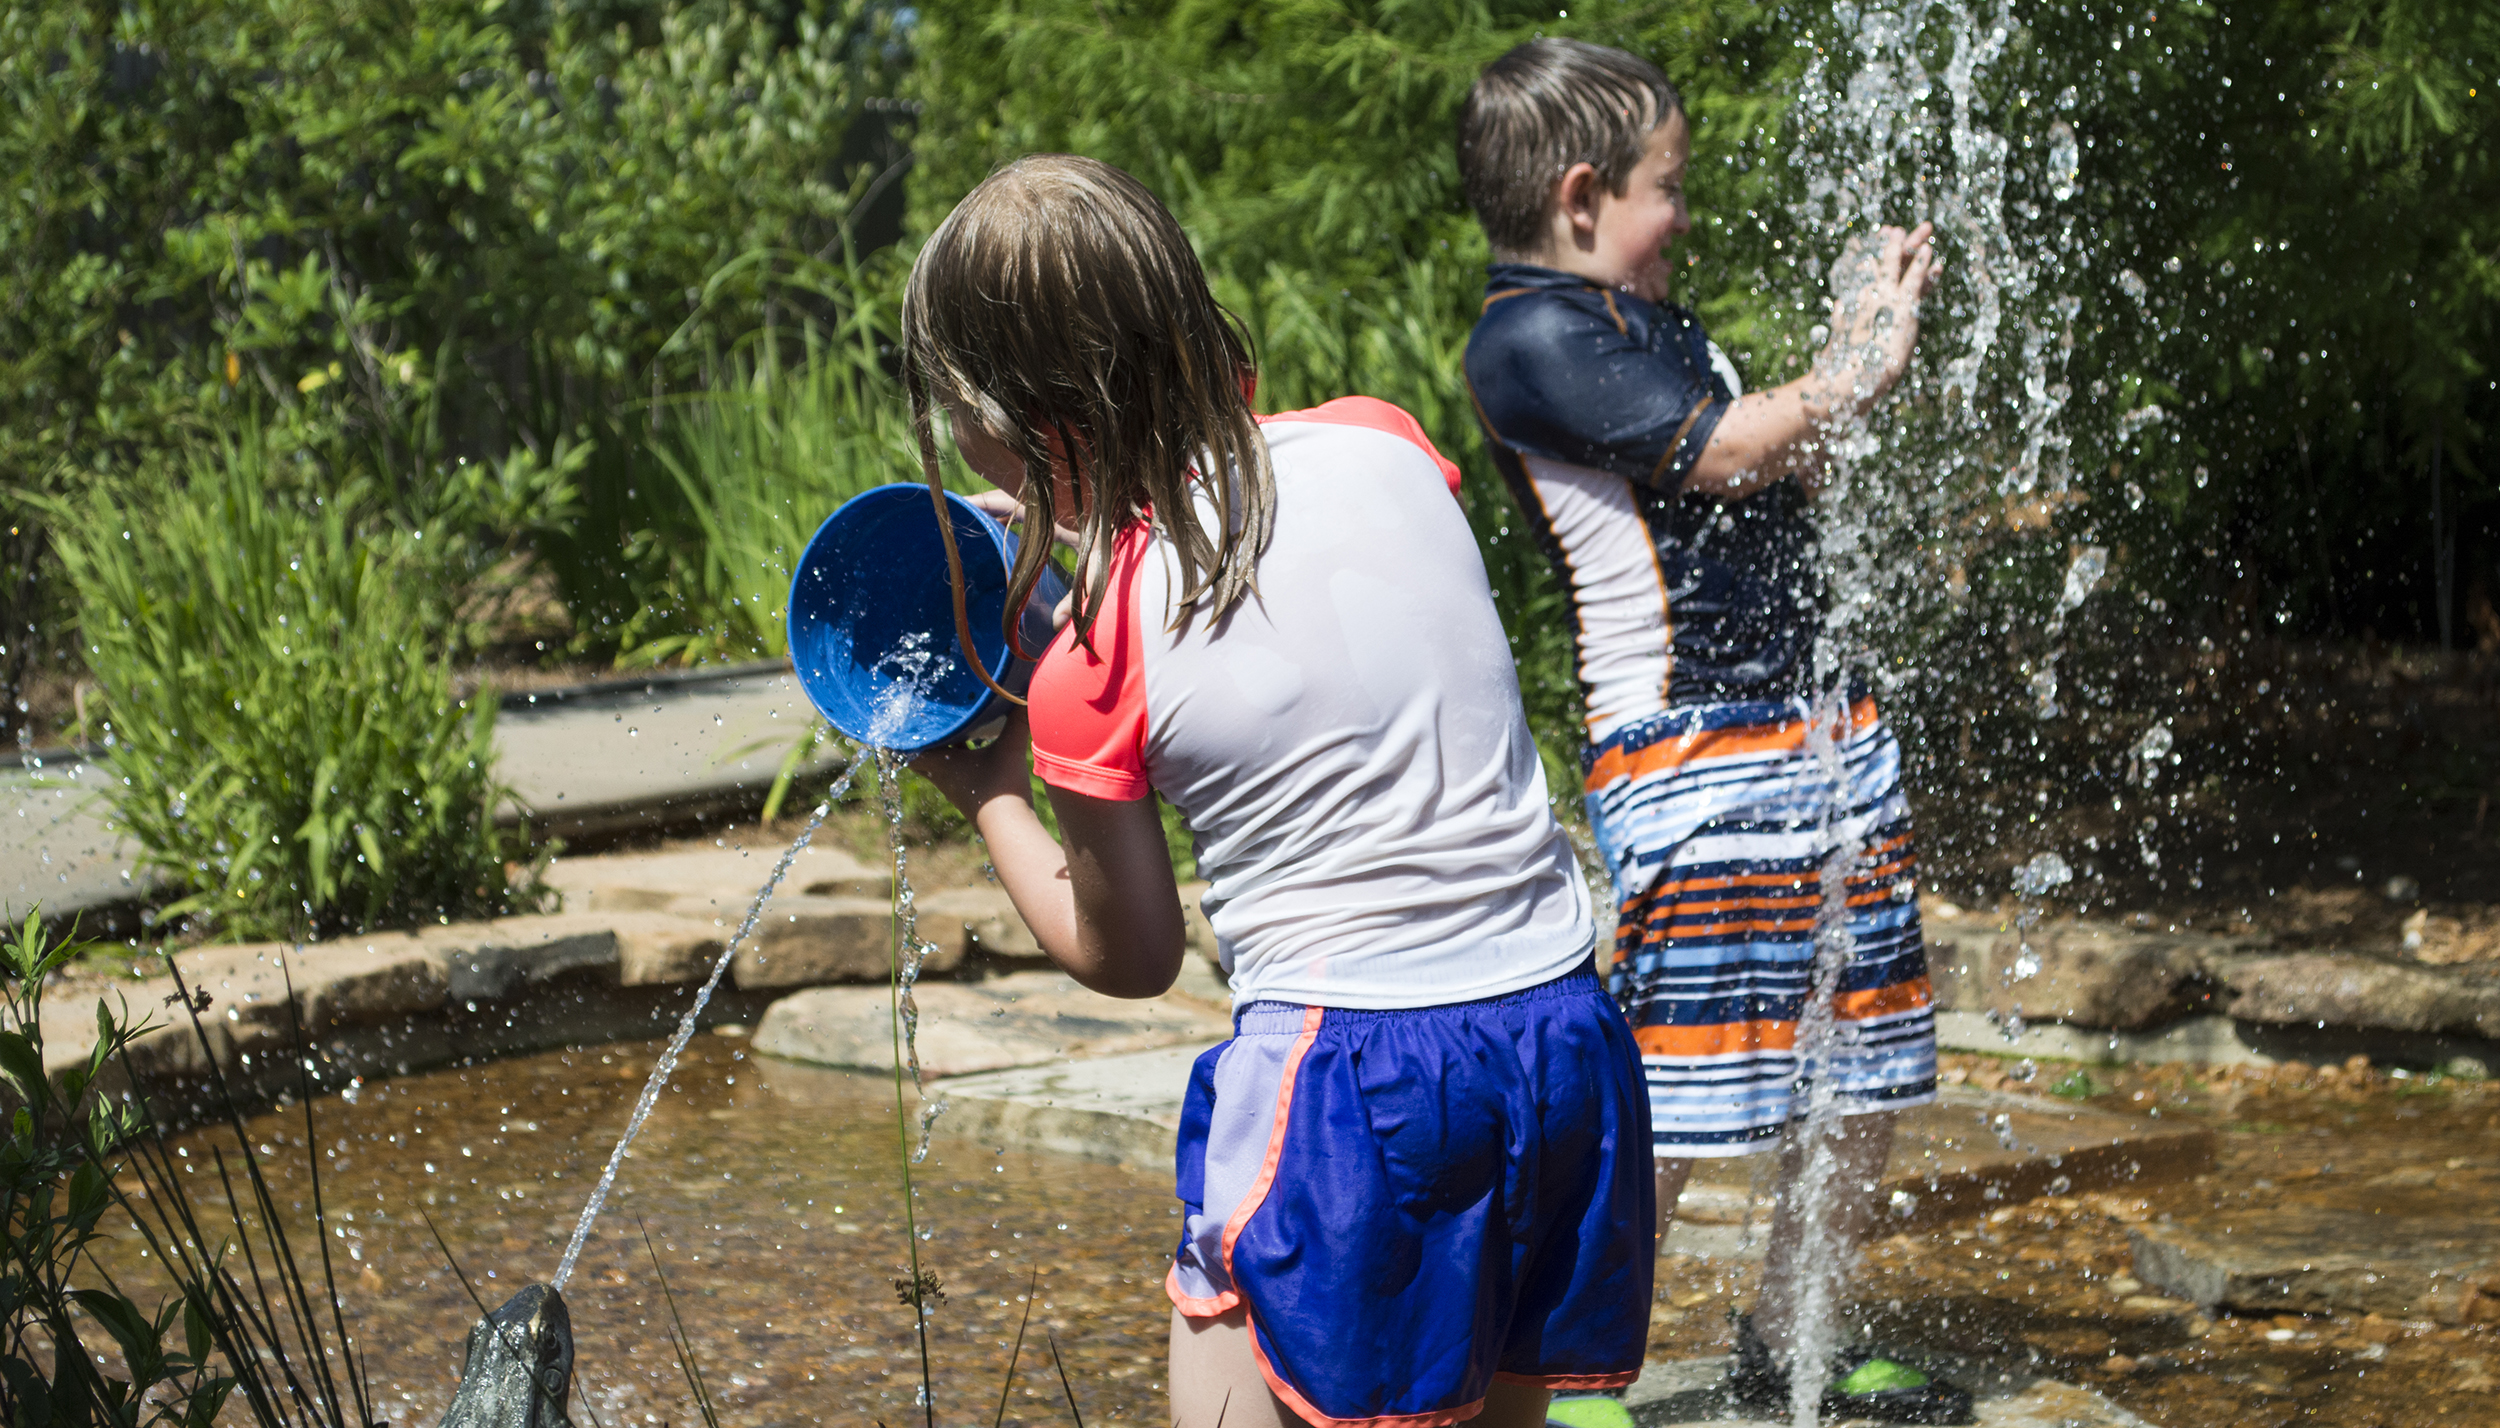 ThingstoDo_KidsSplashpad